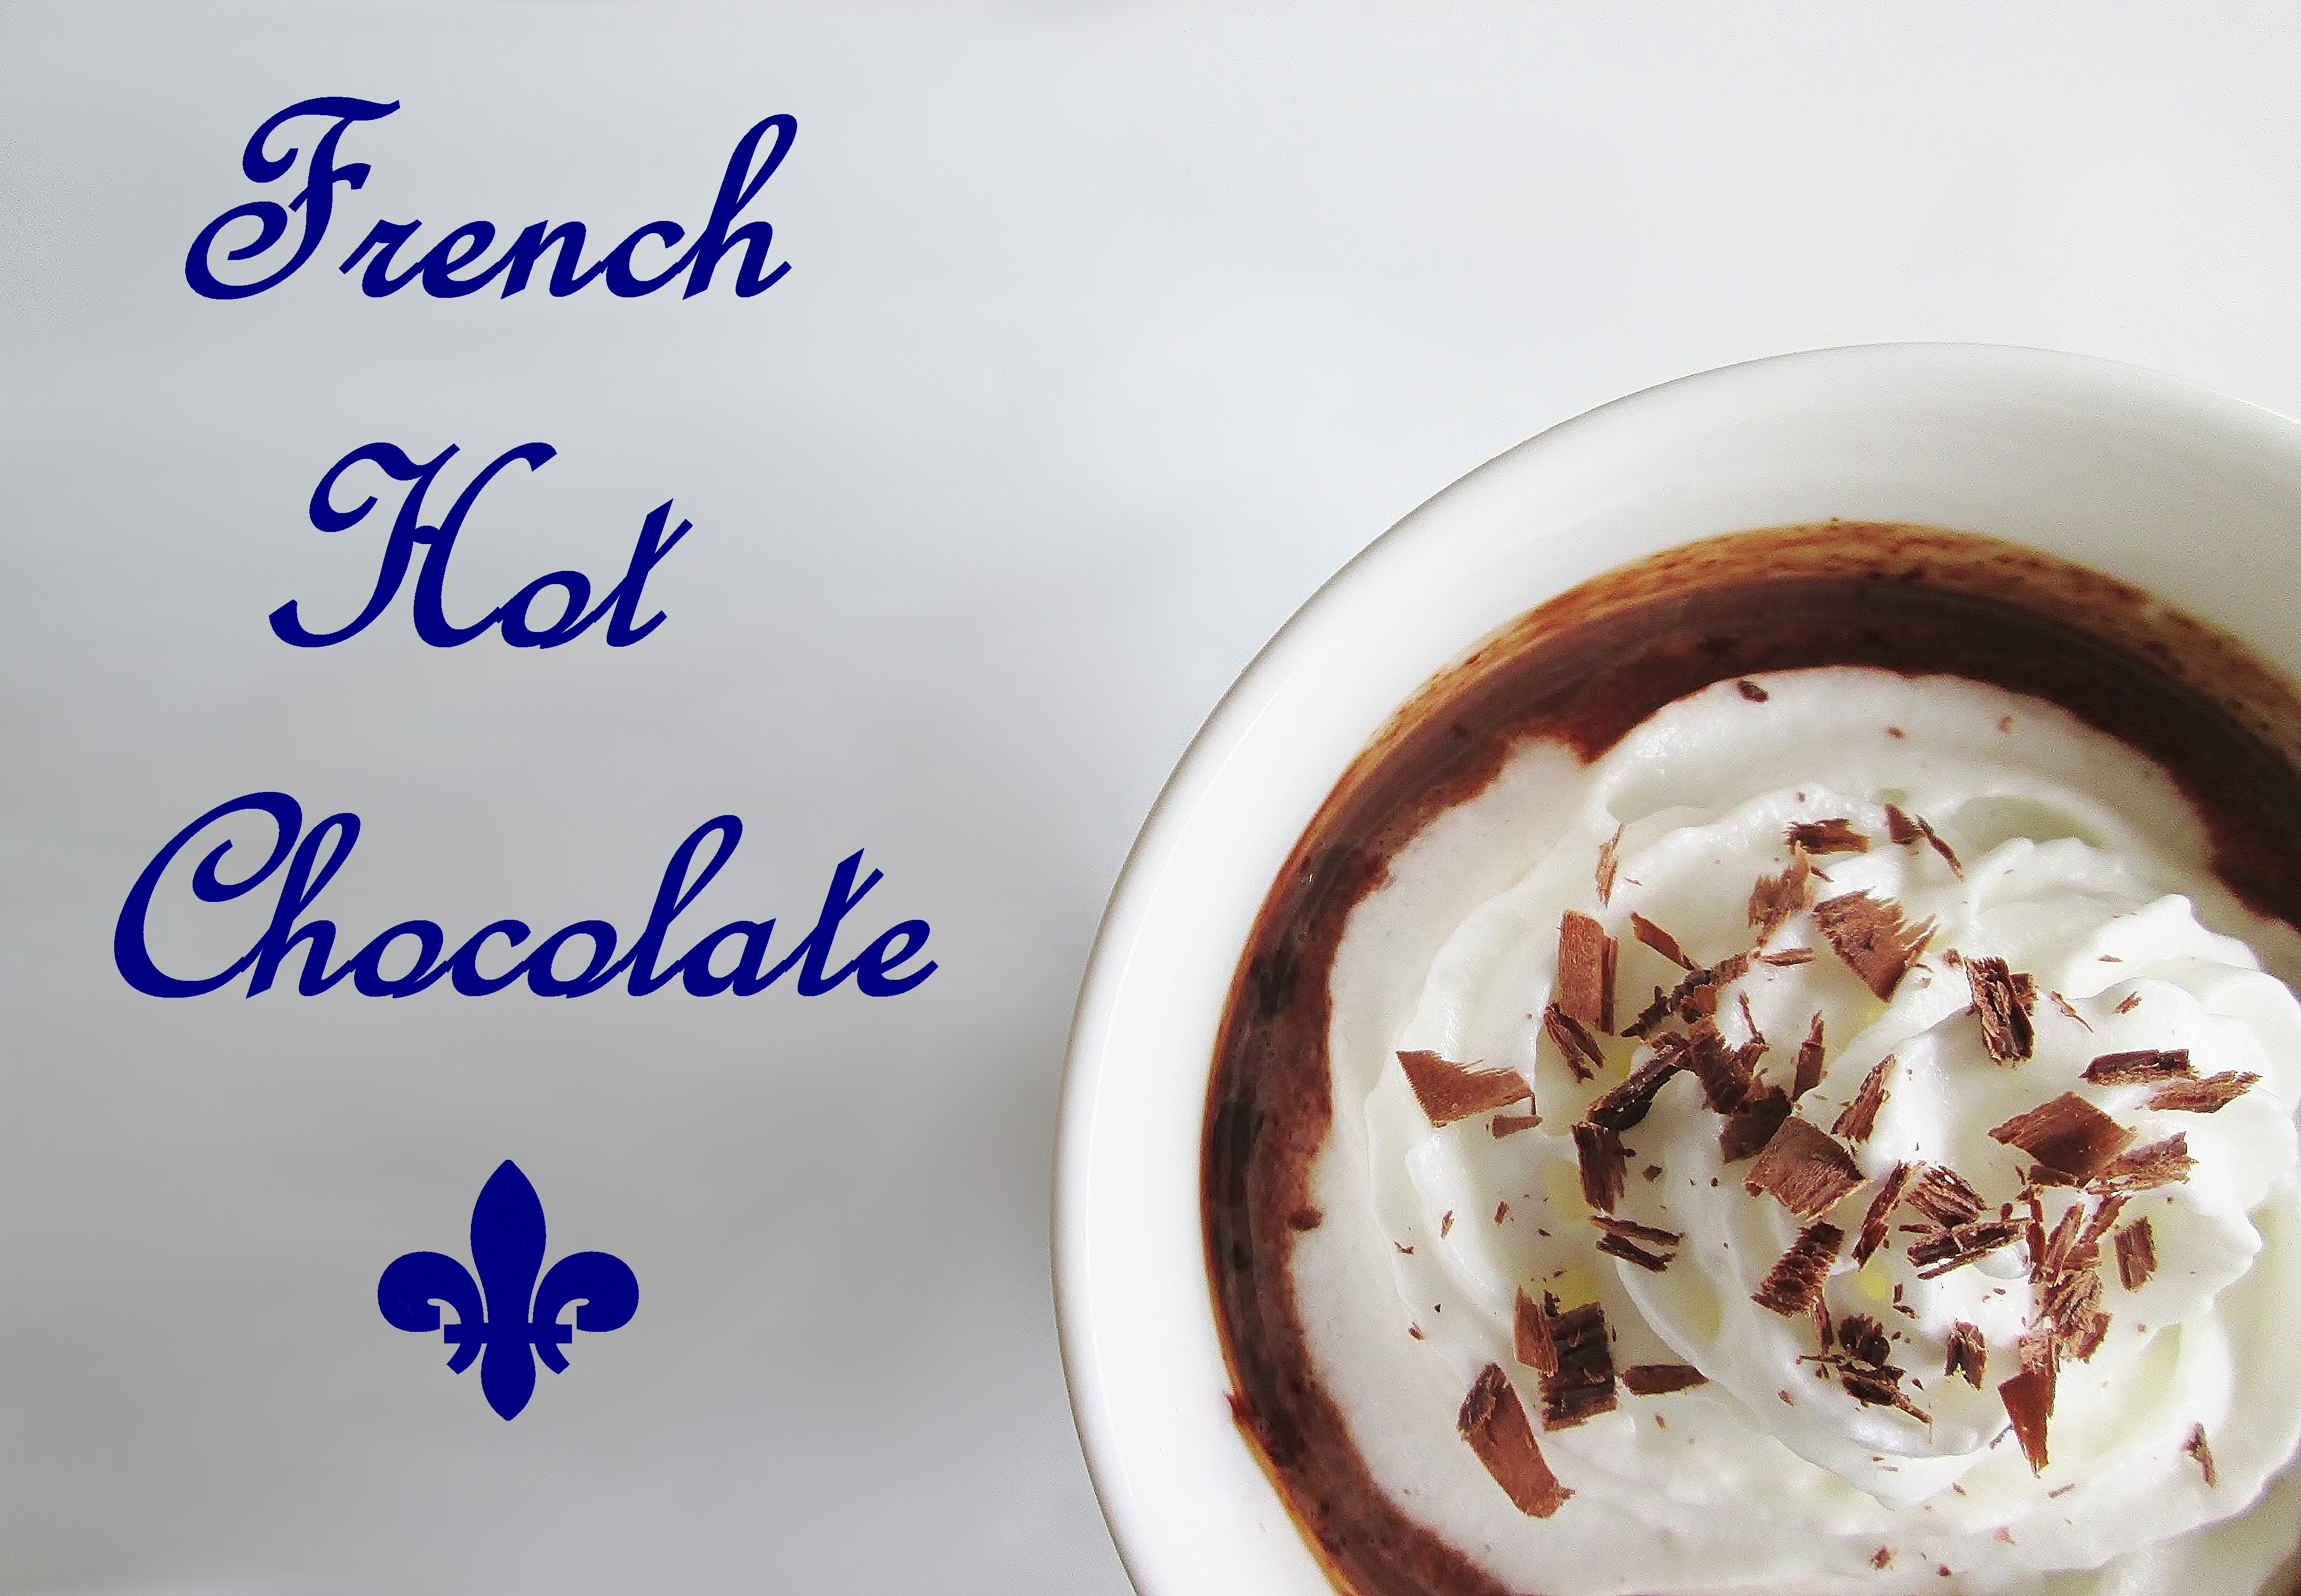 three-musketeers-french-hot-chocolate-br-4744 with label